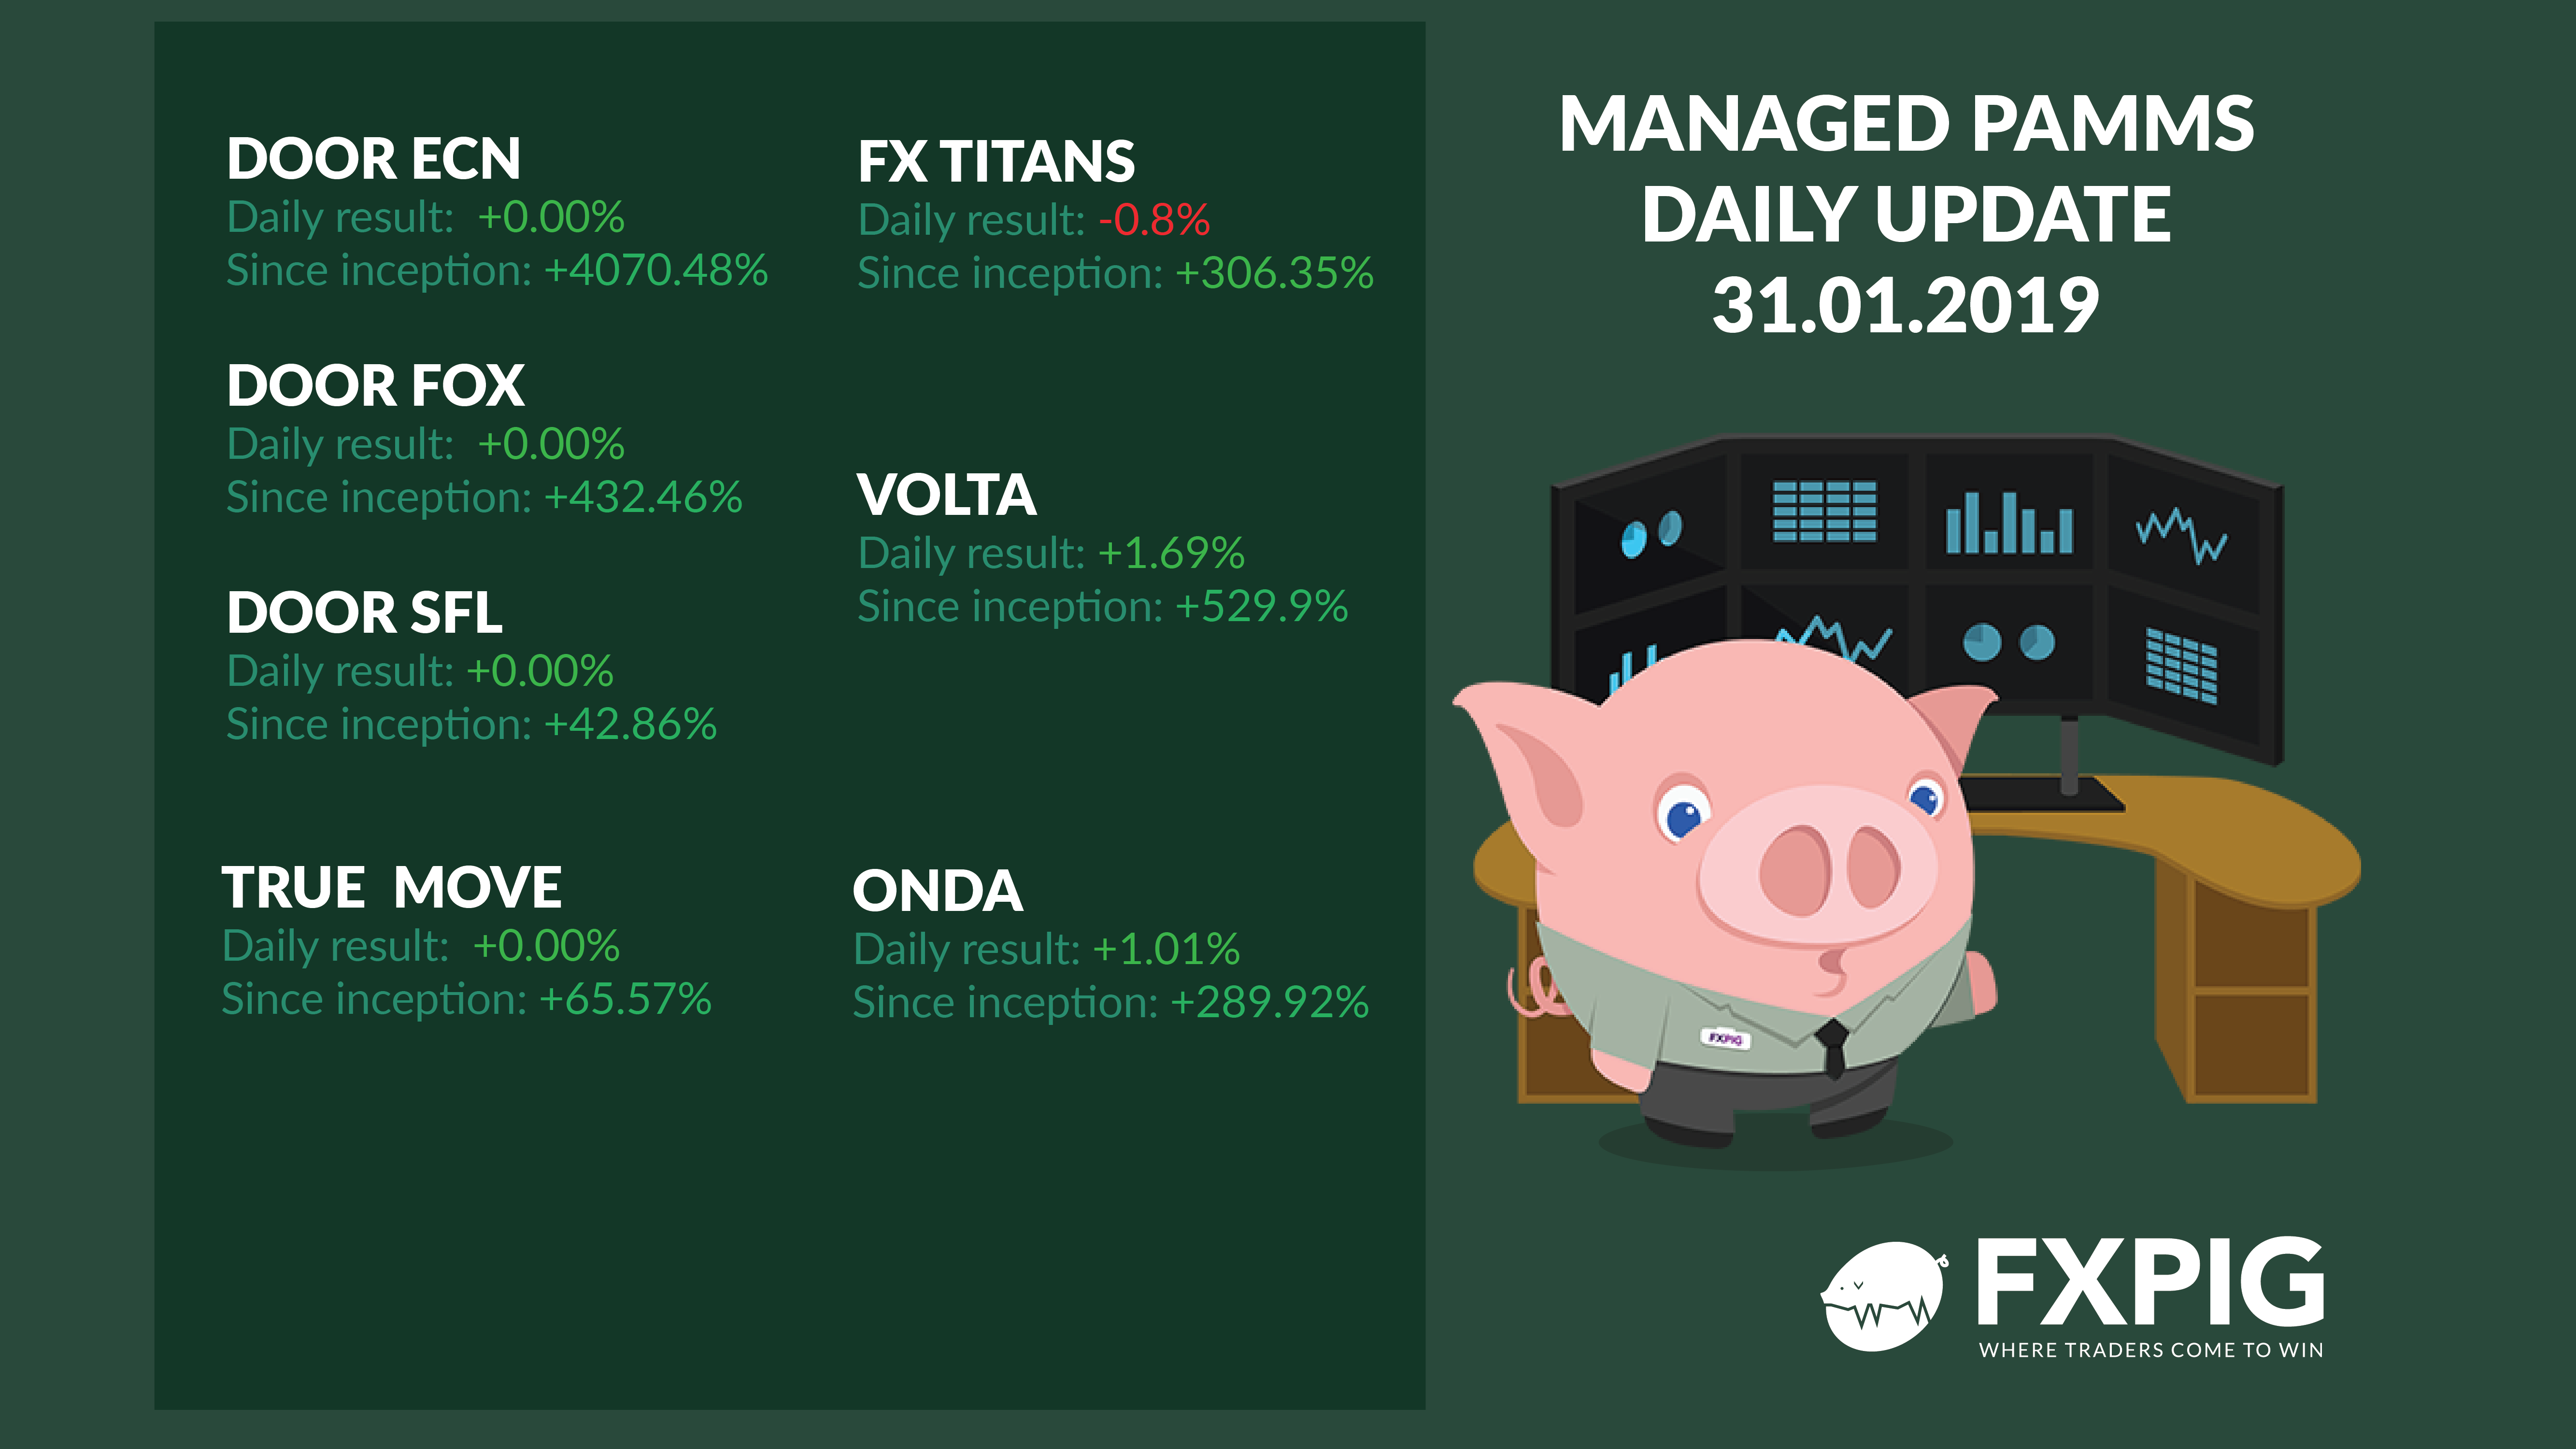 Forex_Trading_Fx_Trader_FXPIG_PAMMS_MANAGED_ACCOUNTS_PROFIT_31.01.2019